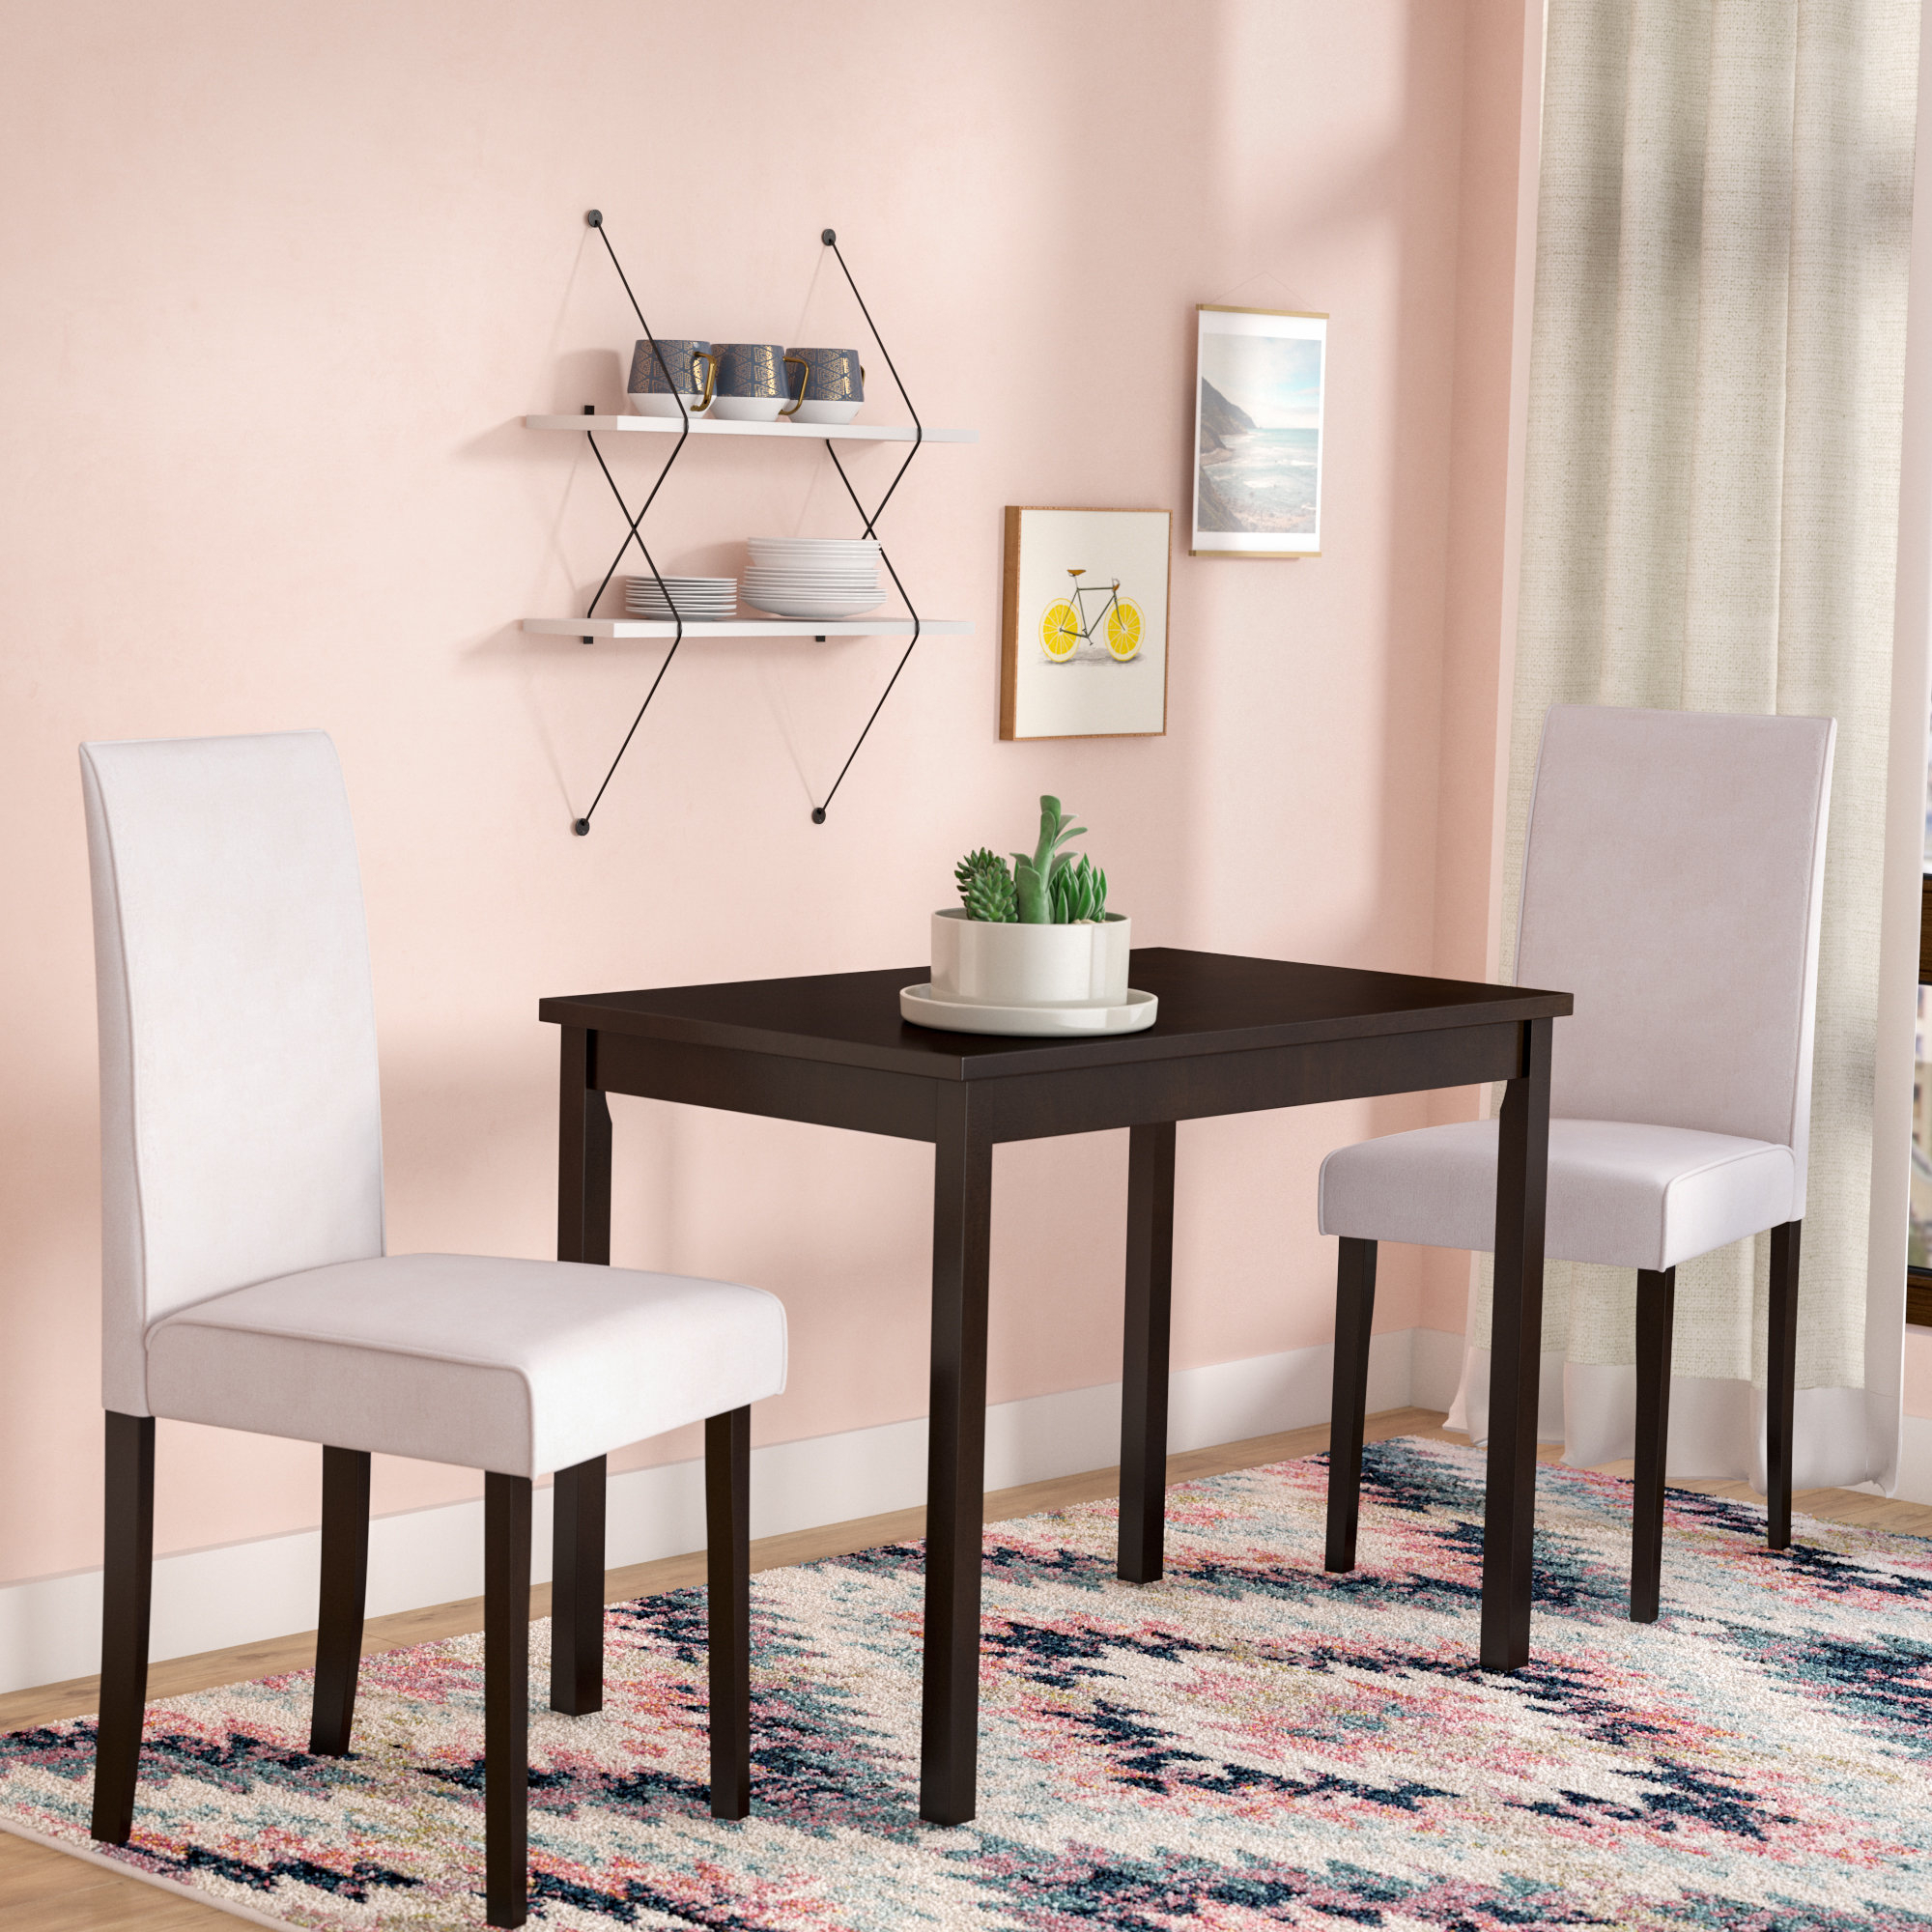 Darvell 3 Piece Dining Set Throughout Most Recent Baillie 3 Piece Dining Sets (Image 6 of 20)